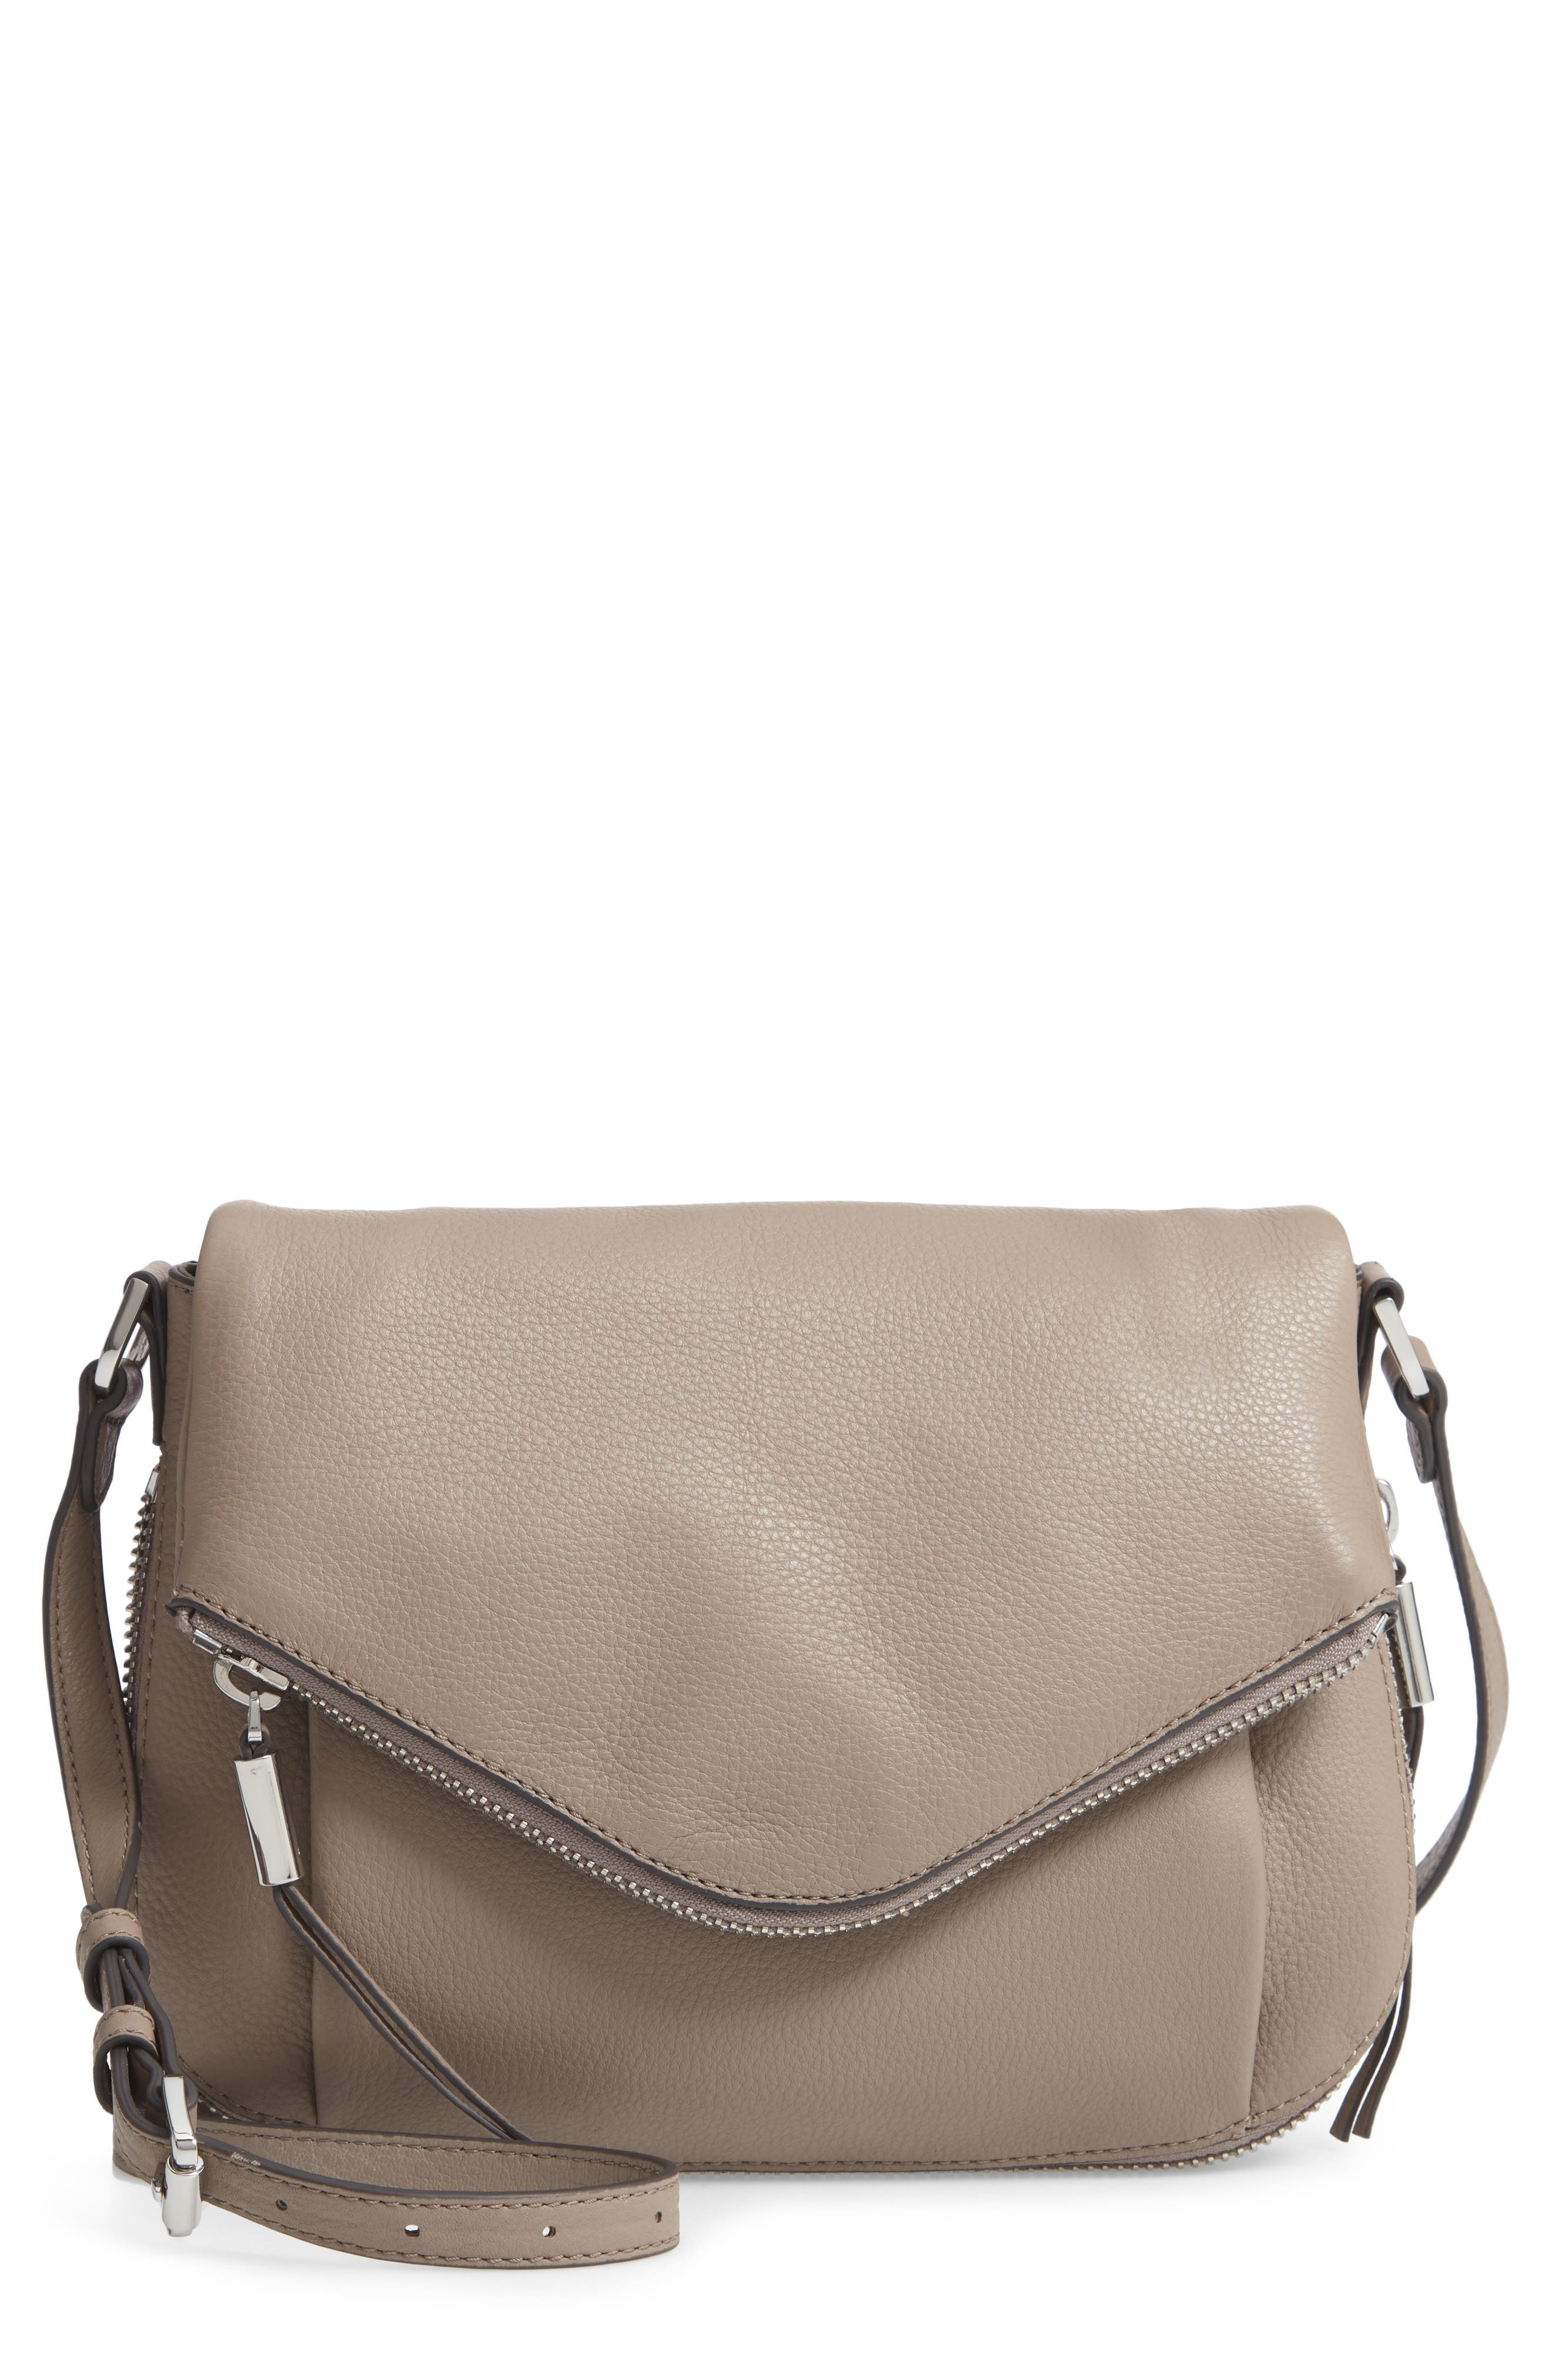 Key Leather Crossbody Bag,                             Main thumbnail 1, color,                             TRANQUILITY